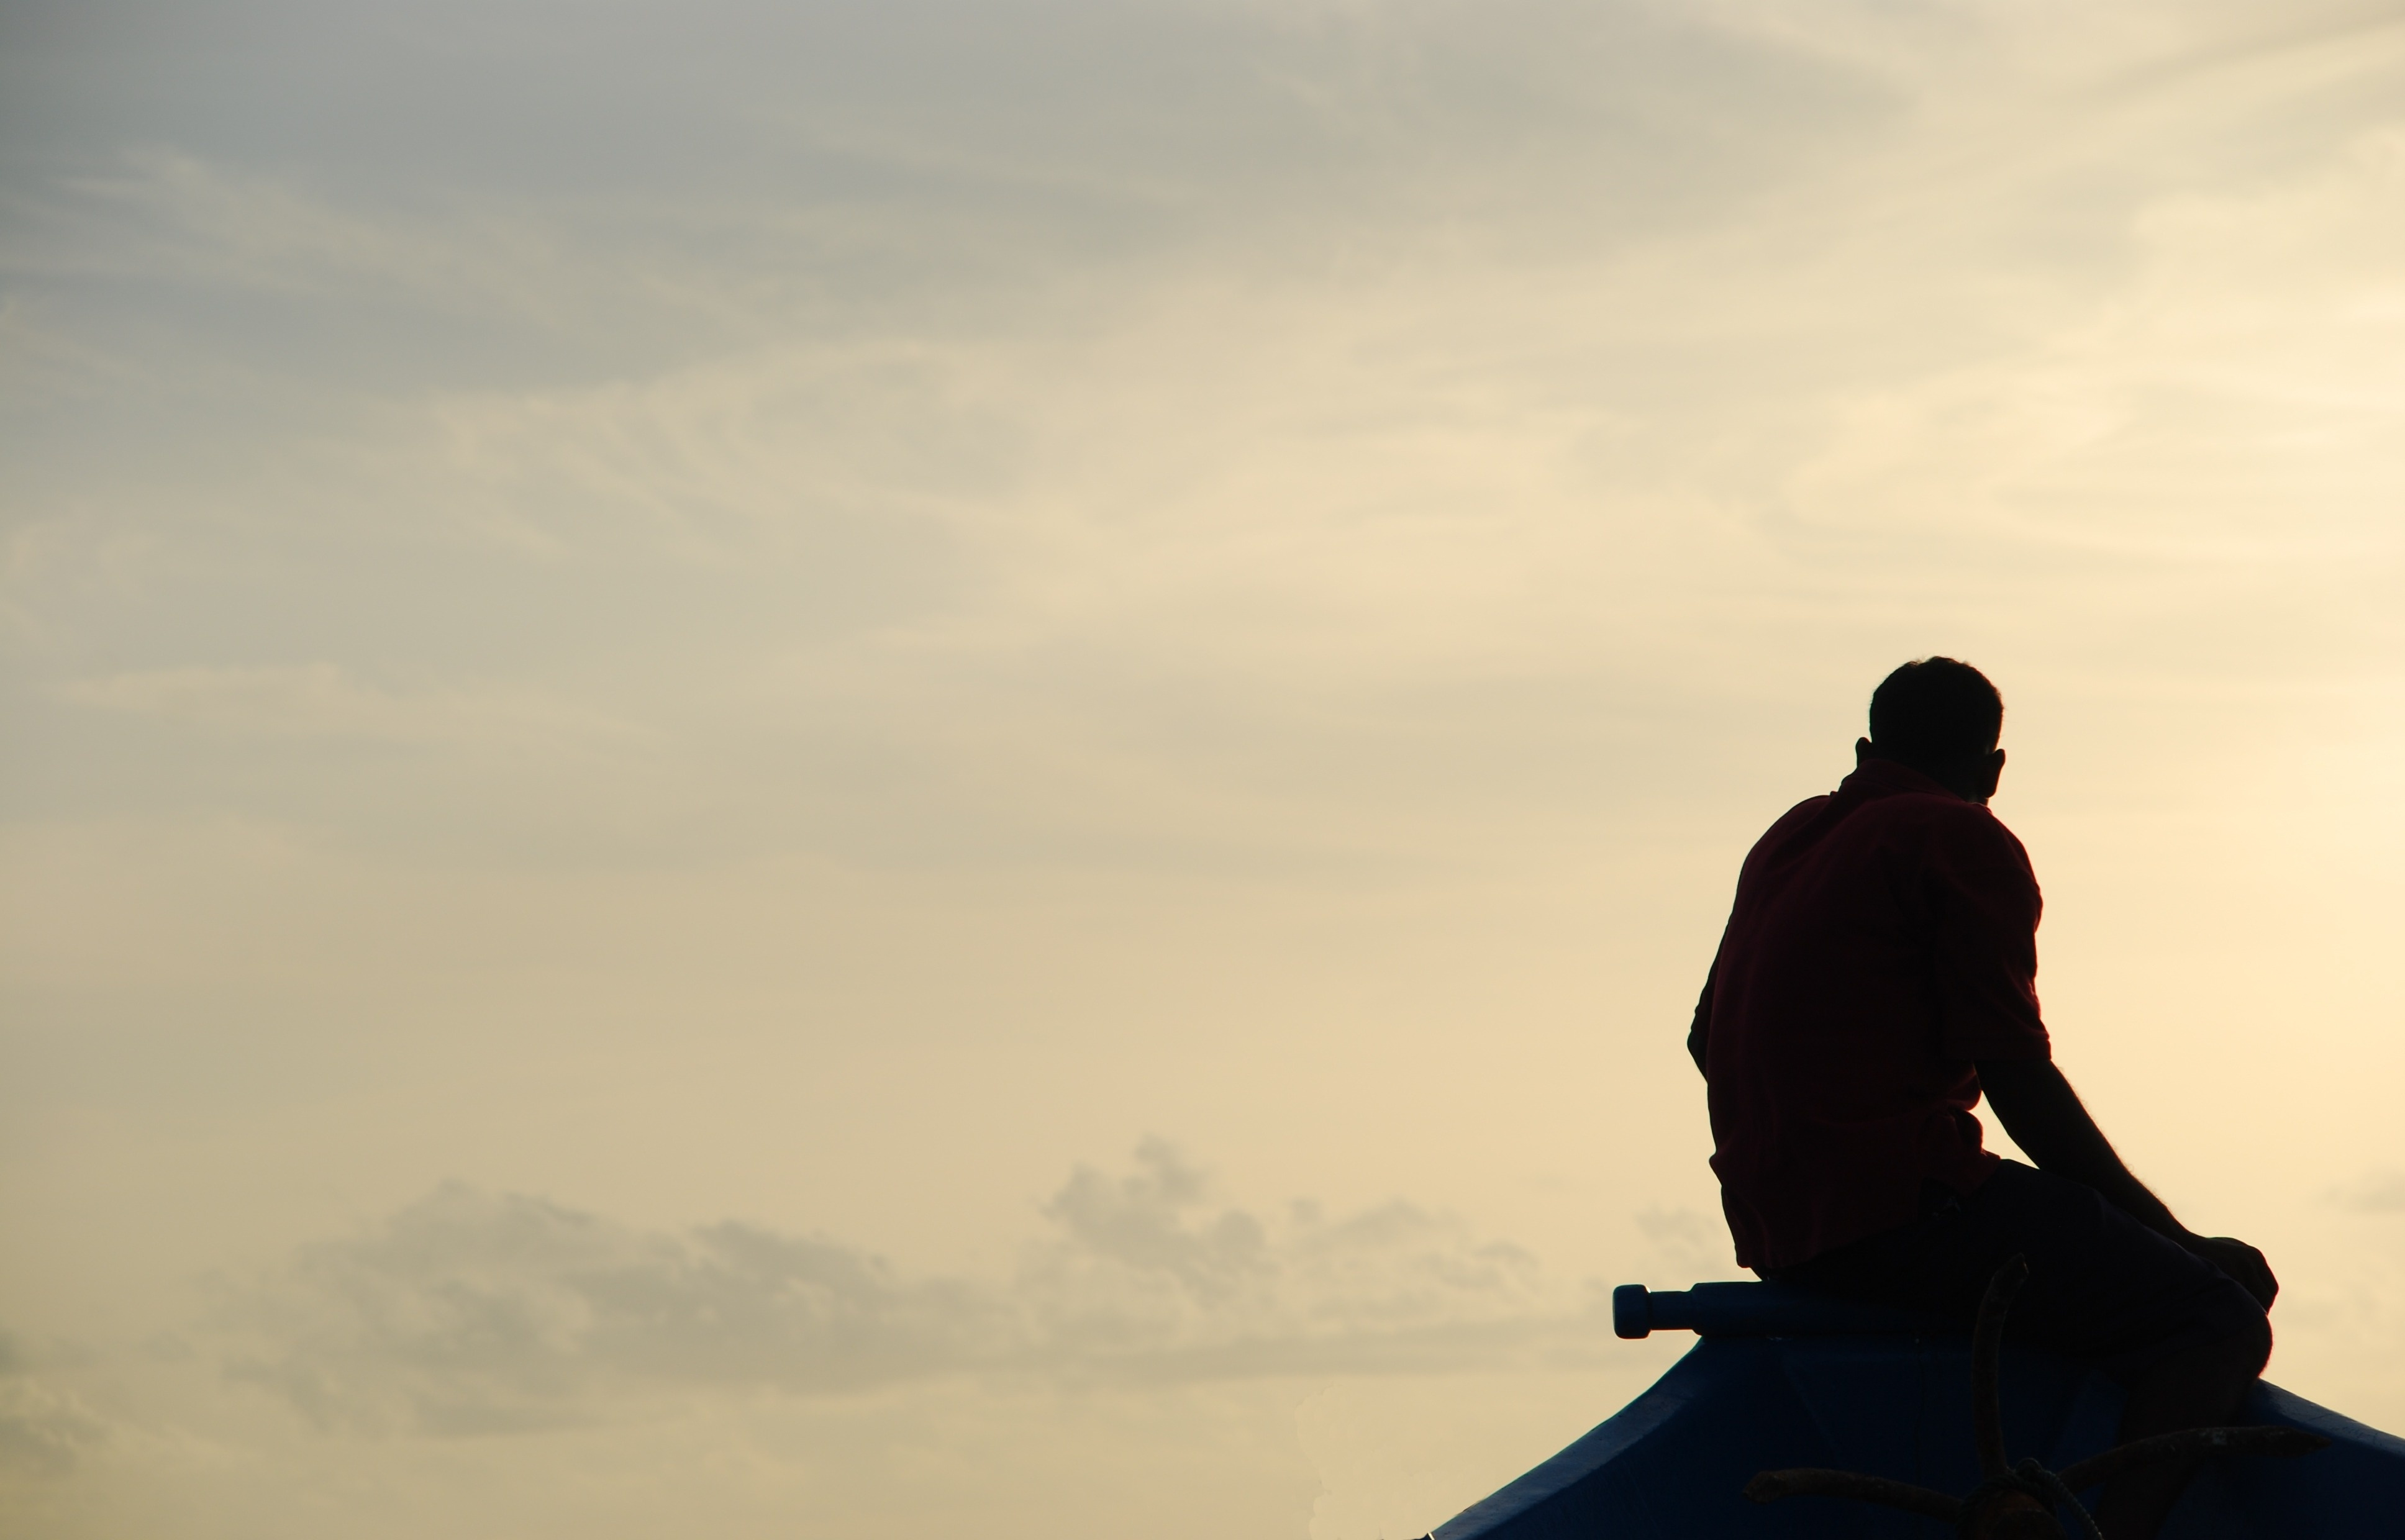 silhouette-of-a-fisherman-on-a-typical-dhoni-boat-sunset_Xkq1m4-1.jpg